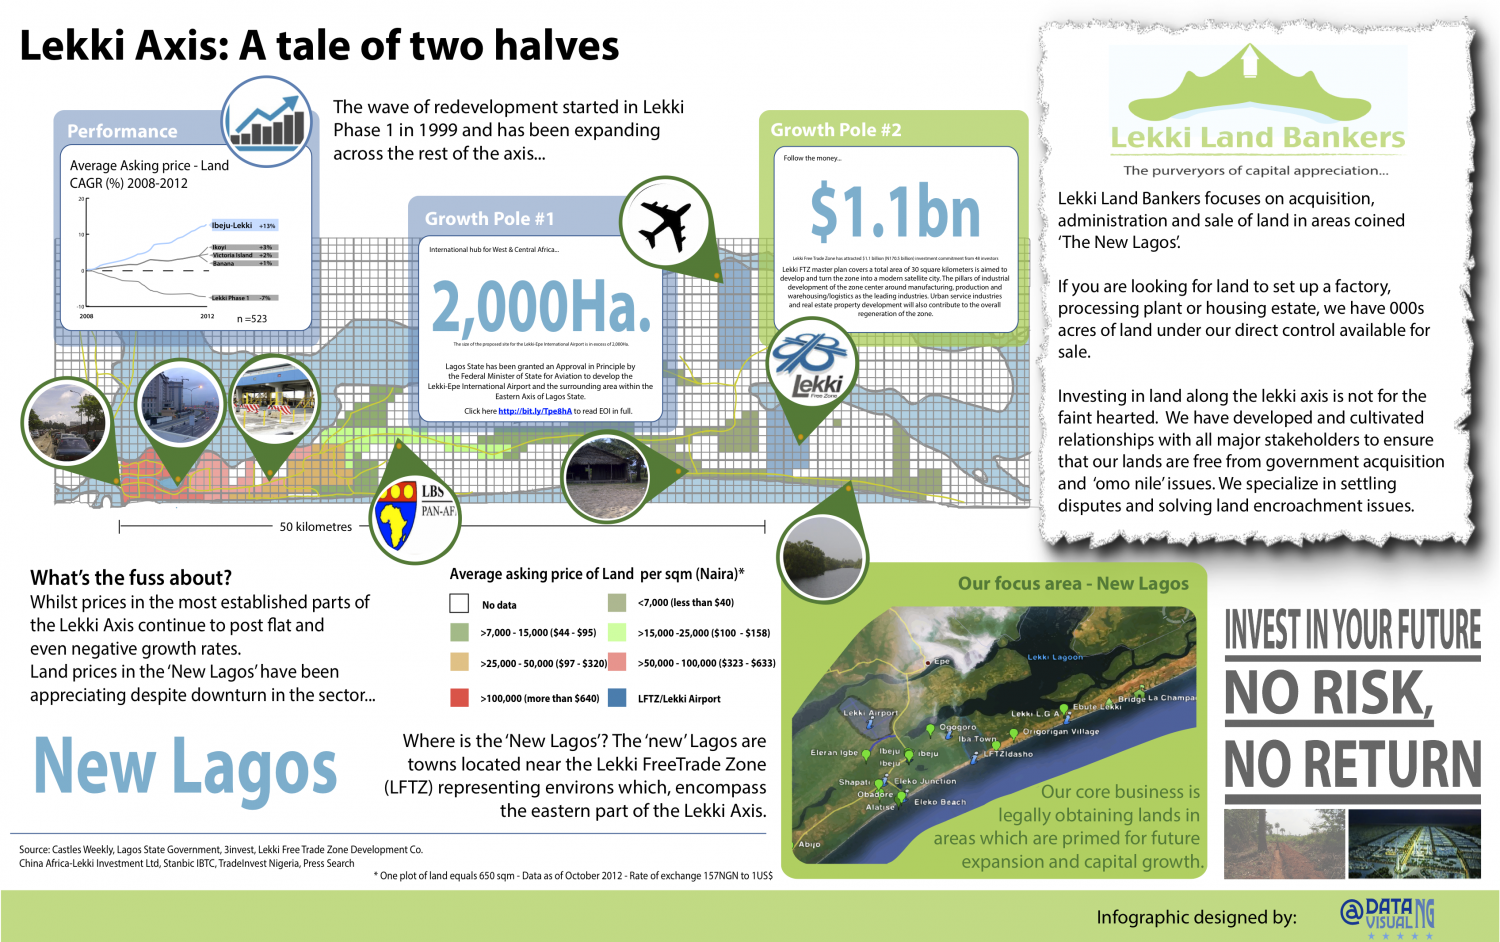 Lekki Axis: A tale of two halves Infographic